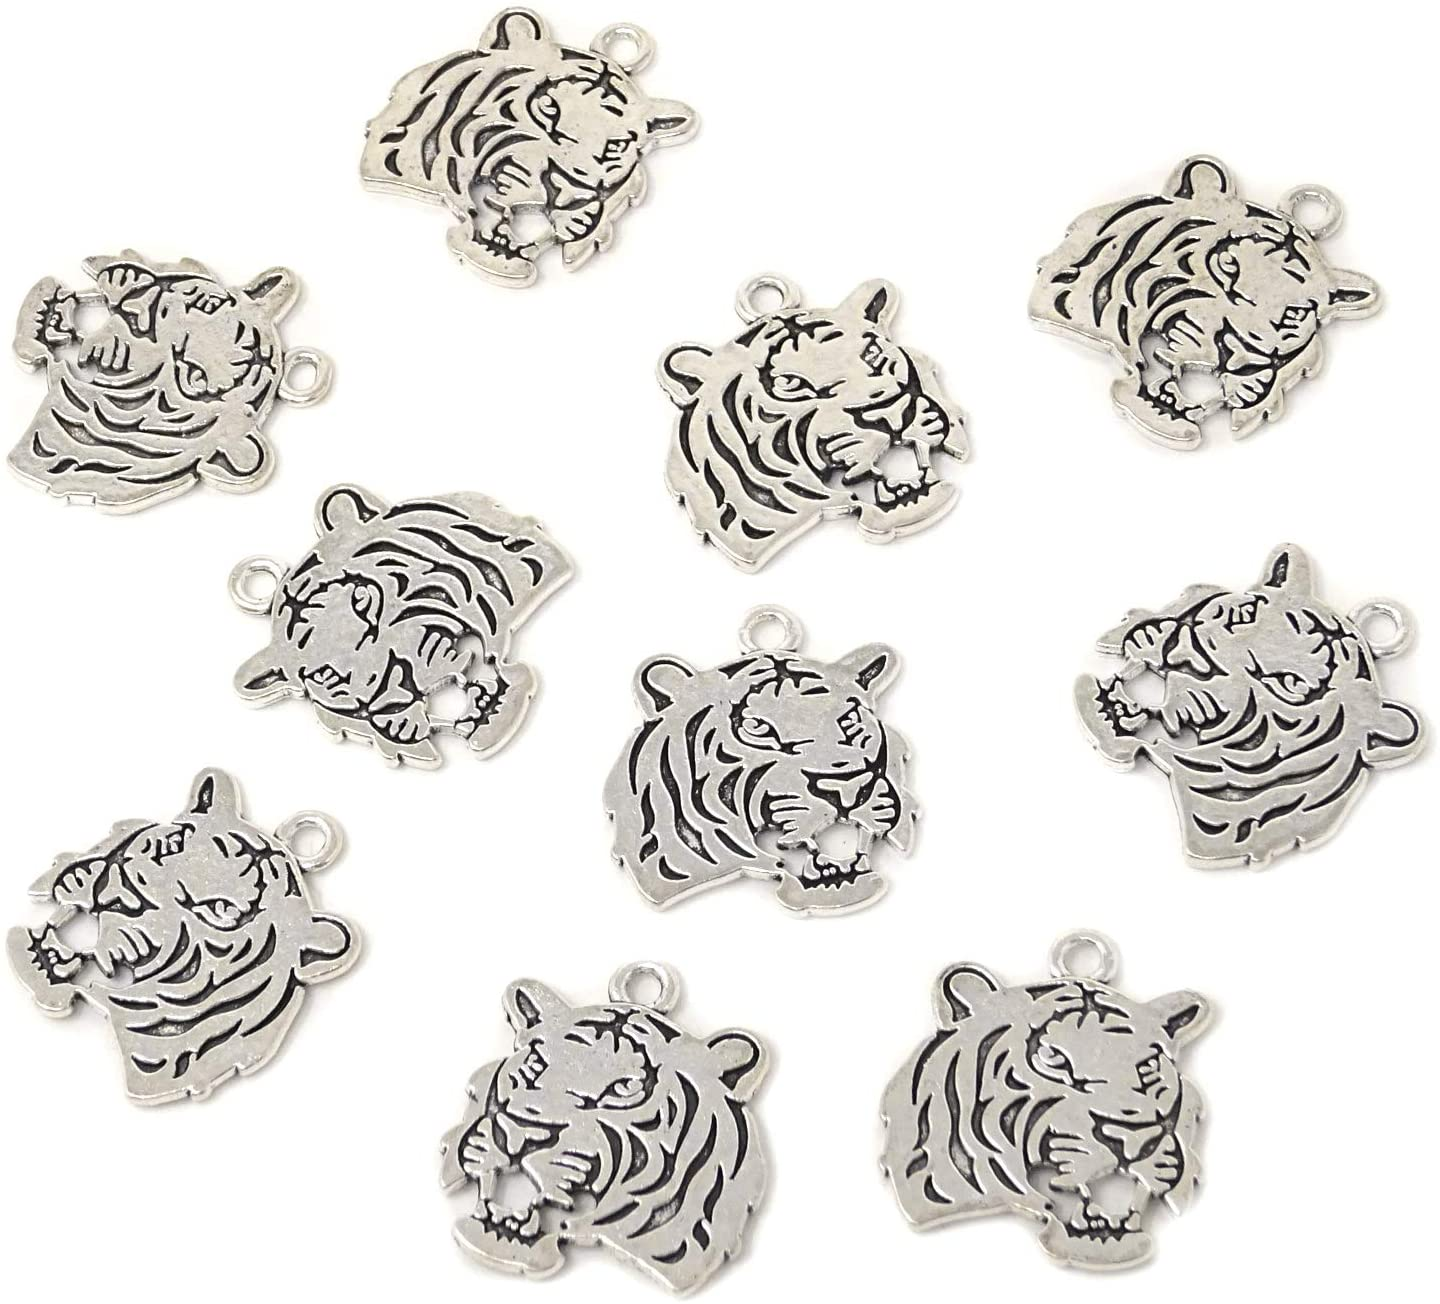 Honbay 10PCS Antique Silver Double Sided Tiger Head Charms Pendant - 27x24mm